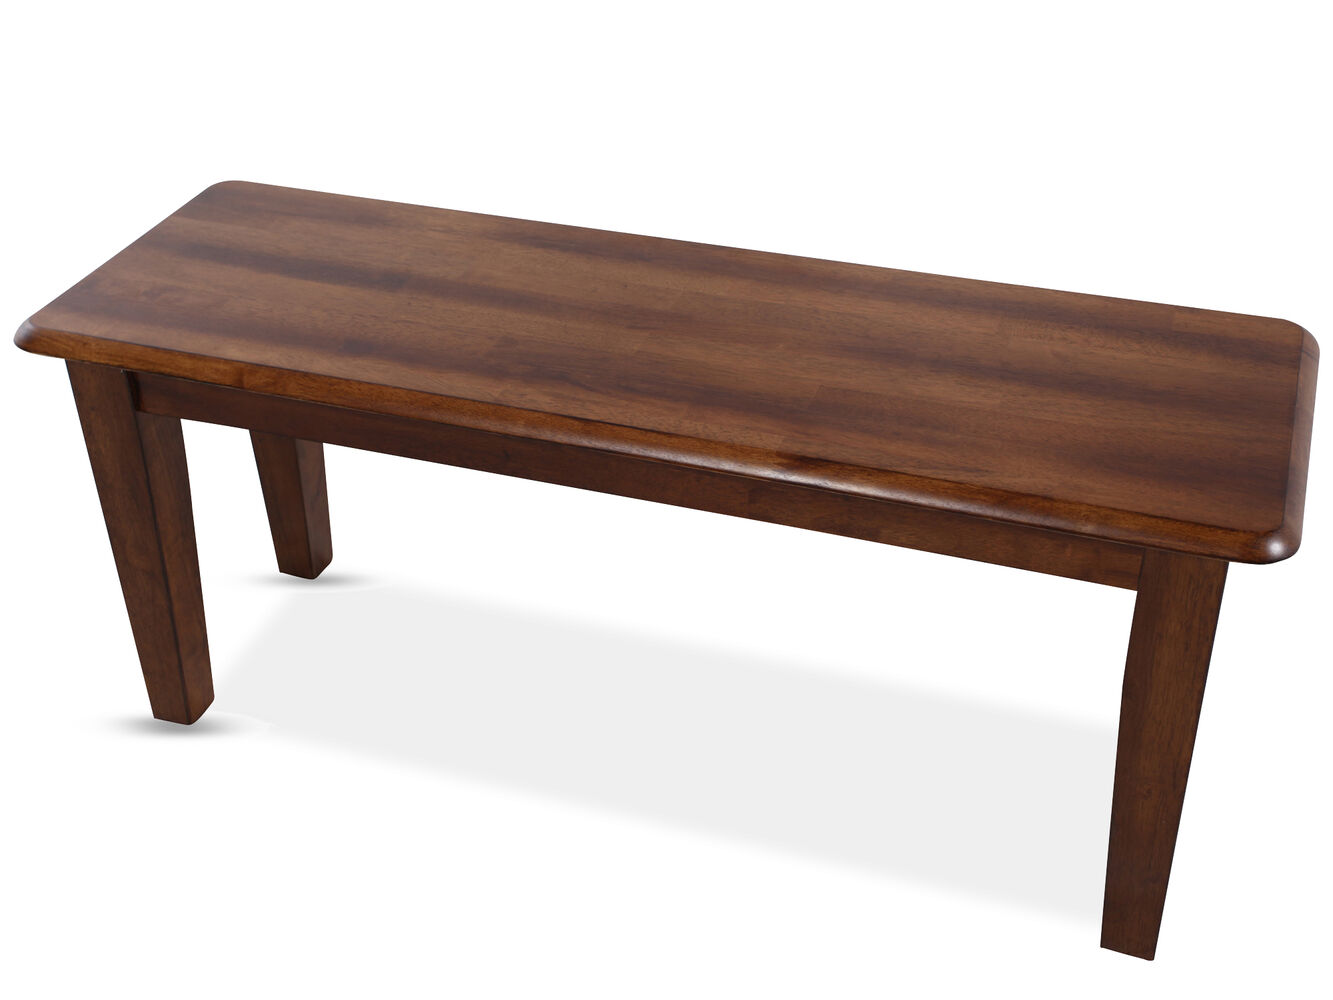 42 Casual Bench In Brown Mathis Brothers Furniture